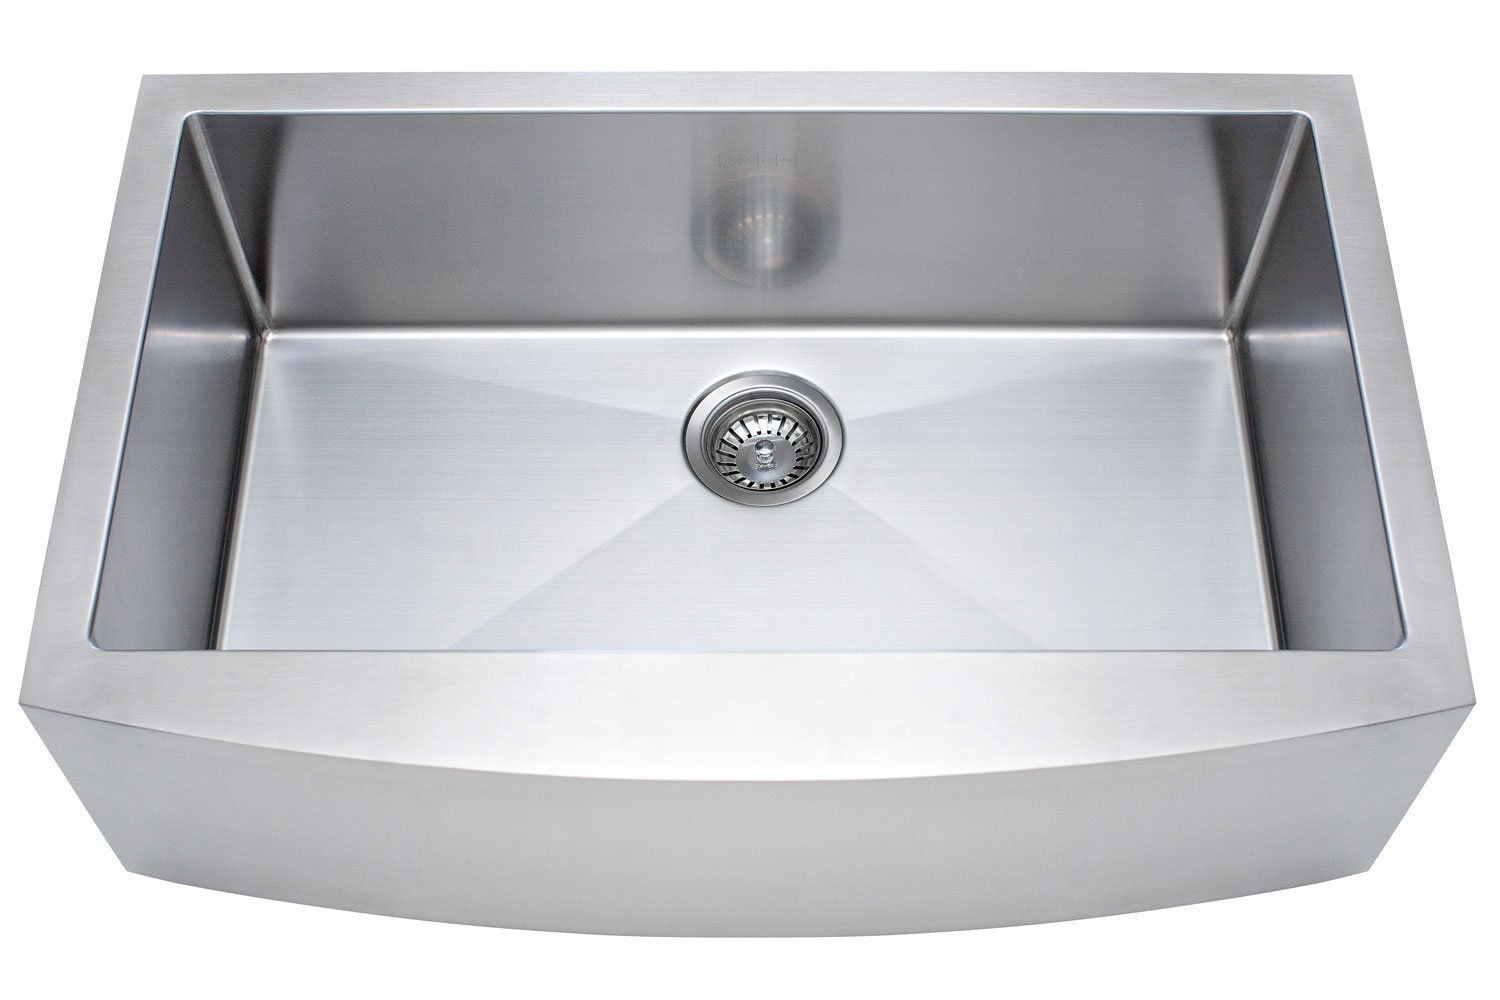 Franke Kinetic 33'' Apron Front Farm House Single Bowl Kitchen Sink, Stainless Steel